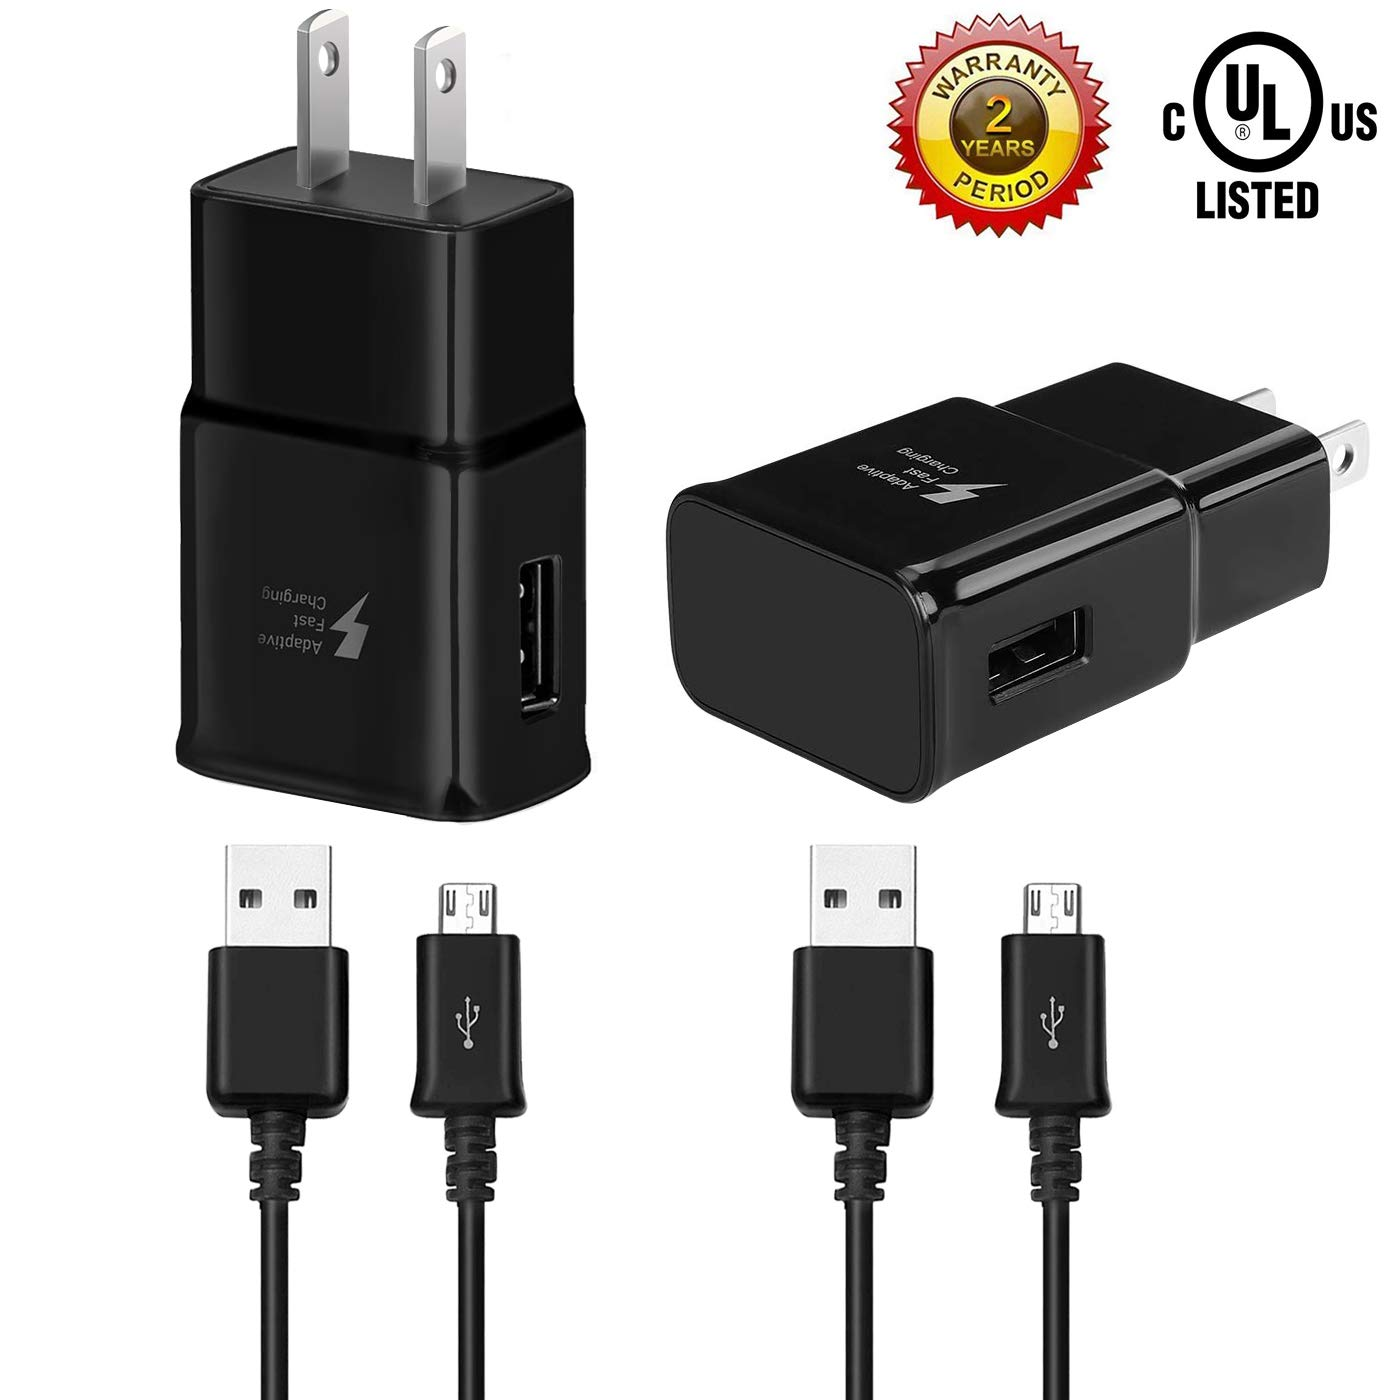 Adaptive Fast Charging Wall Charger Compatible with Samsung Galaxy S7/S7 Edge/S6/Note5/4 /S3 with 5-Feet Micro USB Cable Kit (2 Pack Black 5ft)